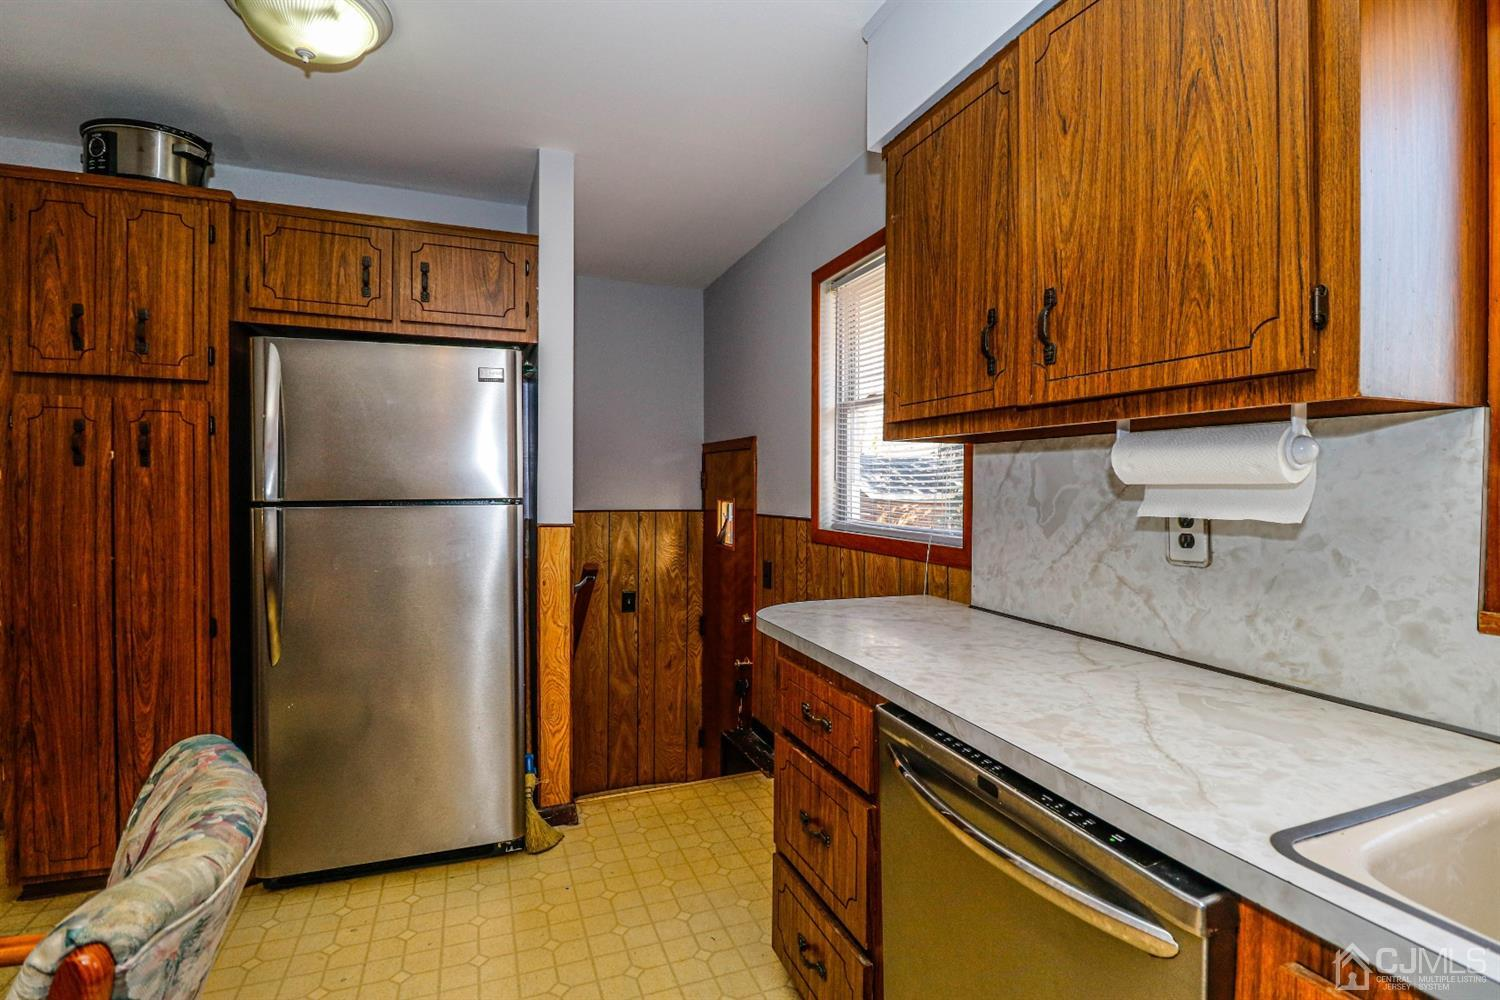 Pantry storage, stainless steel refrigerator and door leading to yard area.